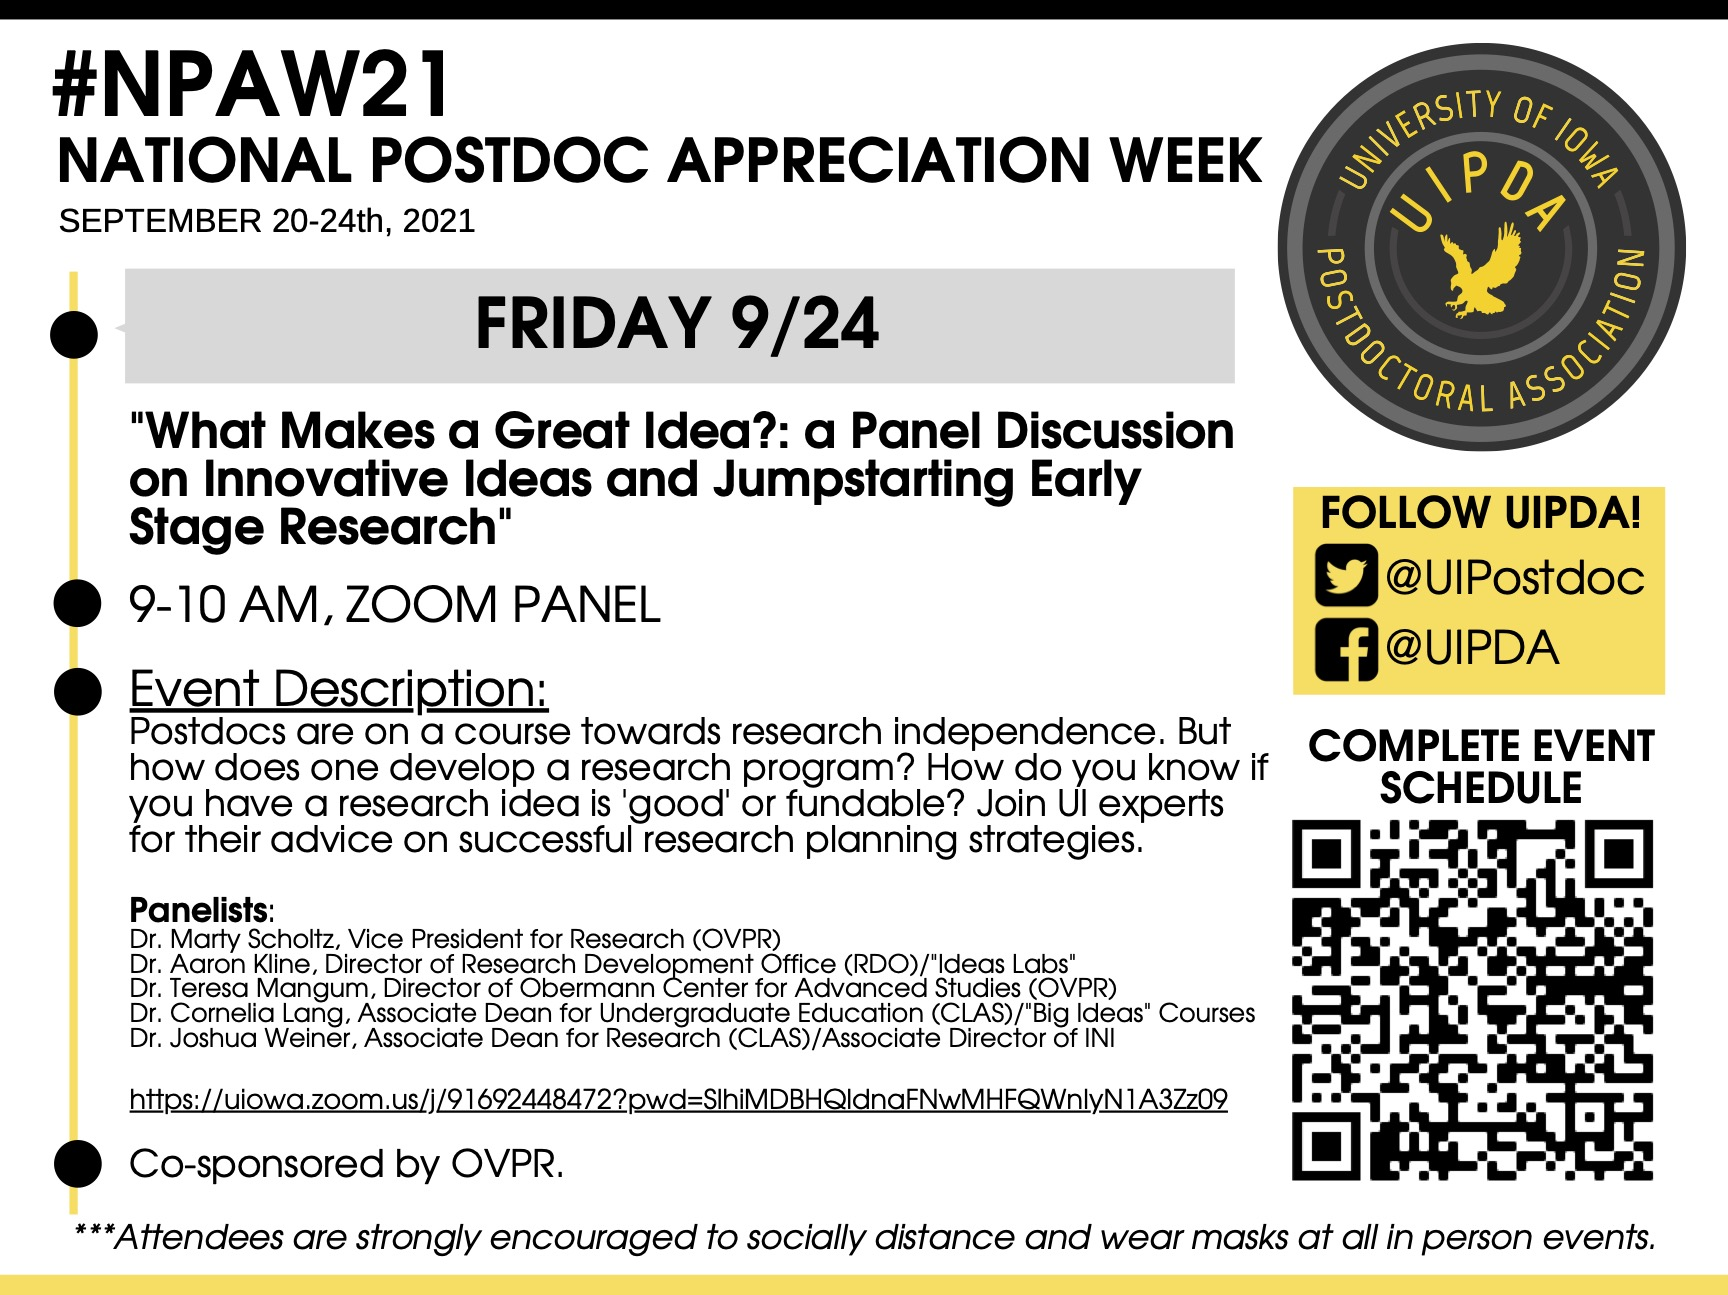 Friday 9/24: What Makes a Great Idea?: A Panel Discussion on Innovative Ideas in Research Programs